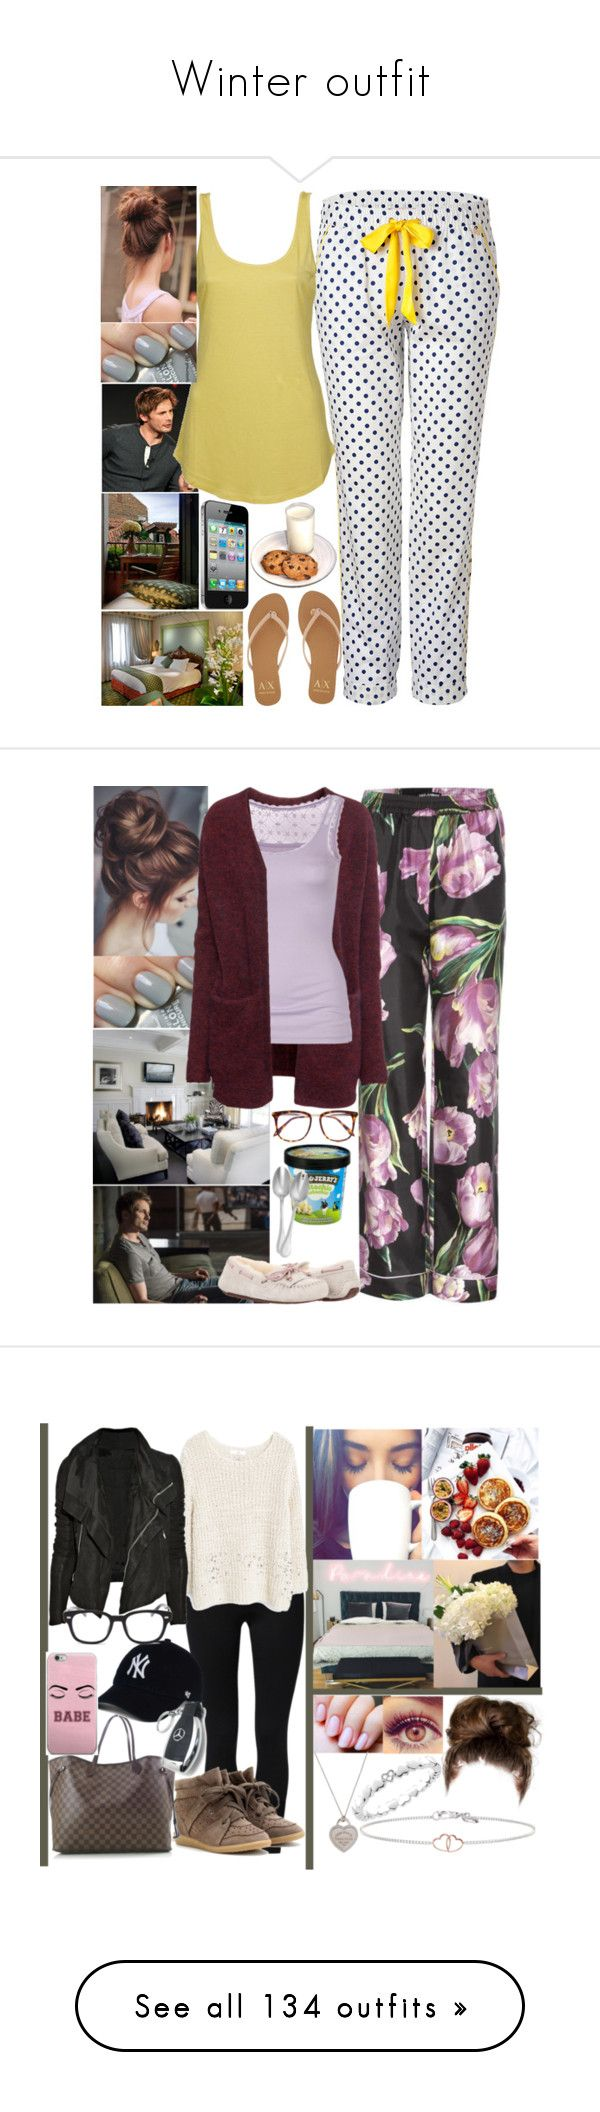 """""""Winter outfit"""" by cz-gldrn ❤ liked on Polyvore featuring Juicy Couture, Armani Exchange, Agent Ninetynine, Dolce&Gabbana, H&M, Fat Face, UGG Australia, Victoria Beckham, Couzon and NIKE"""